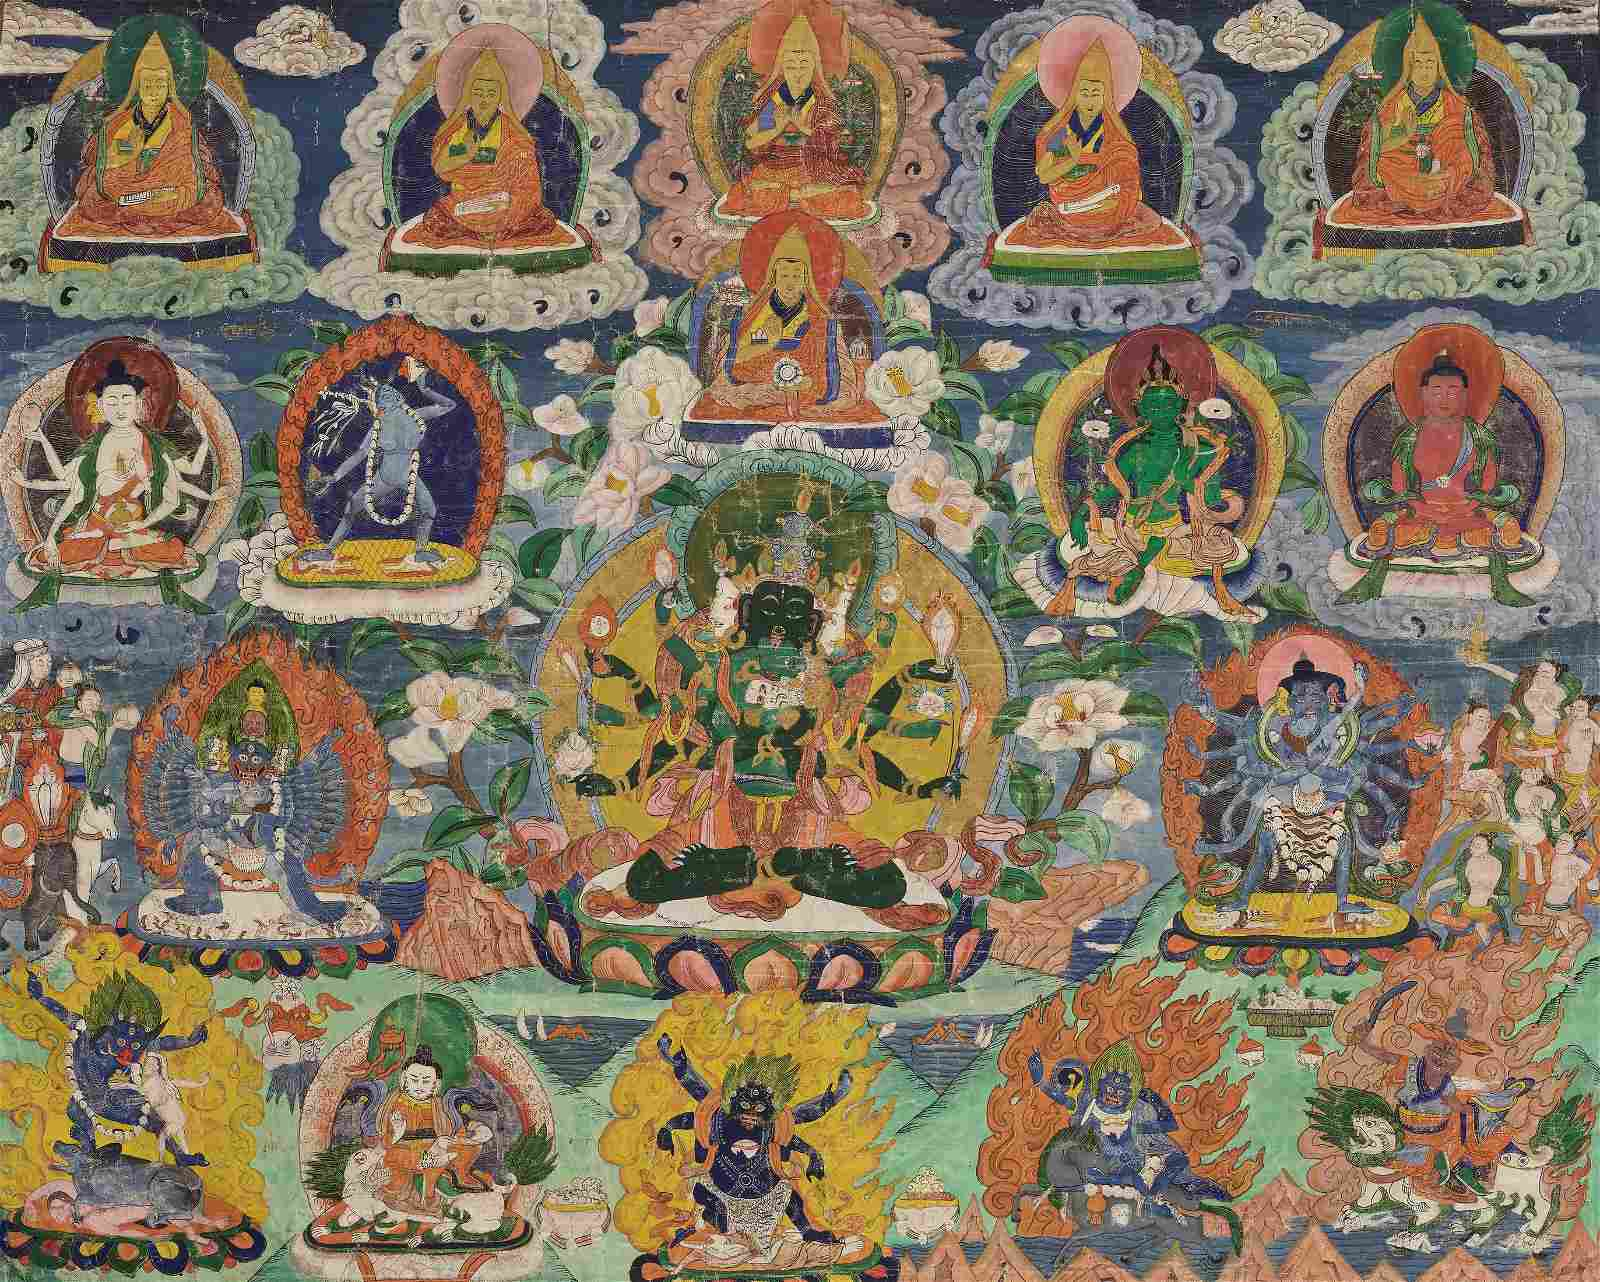 A THANGKA OF YOGAMBARA WITH HIS CONSORT, 18TH CT